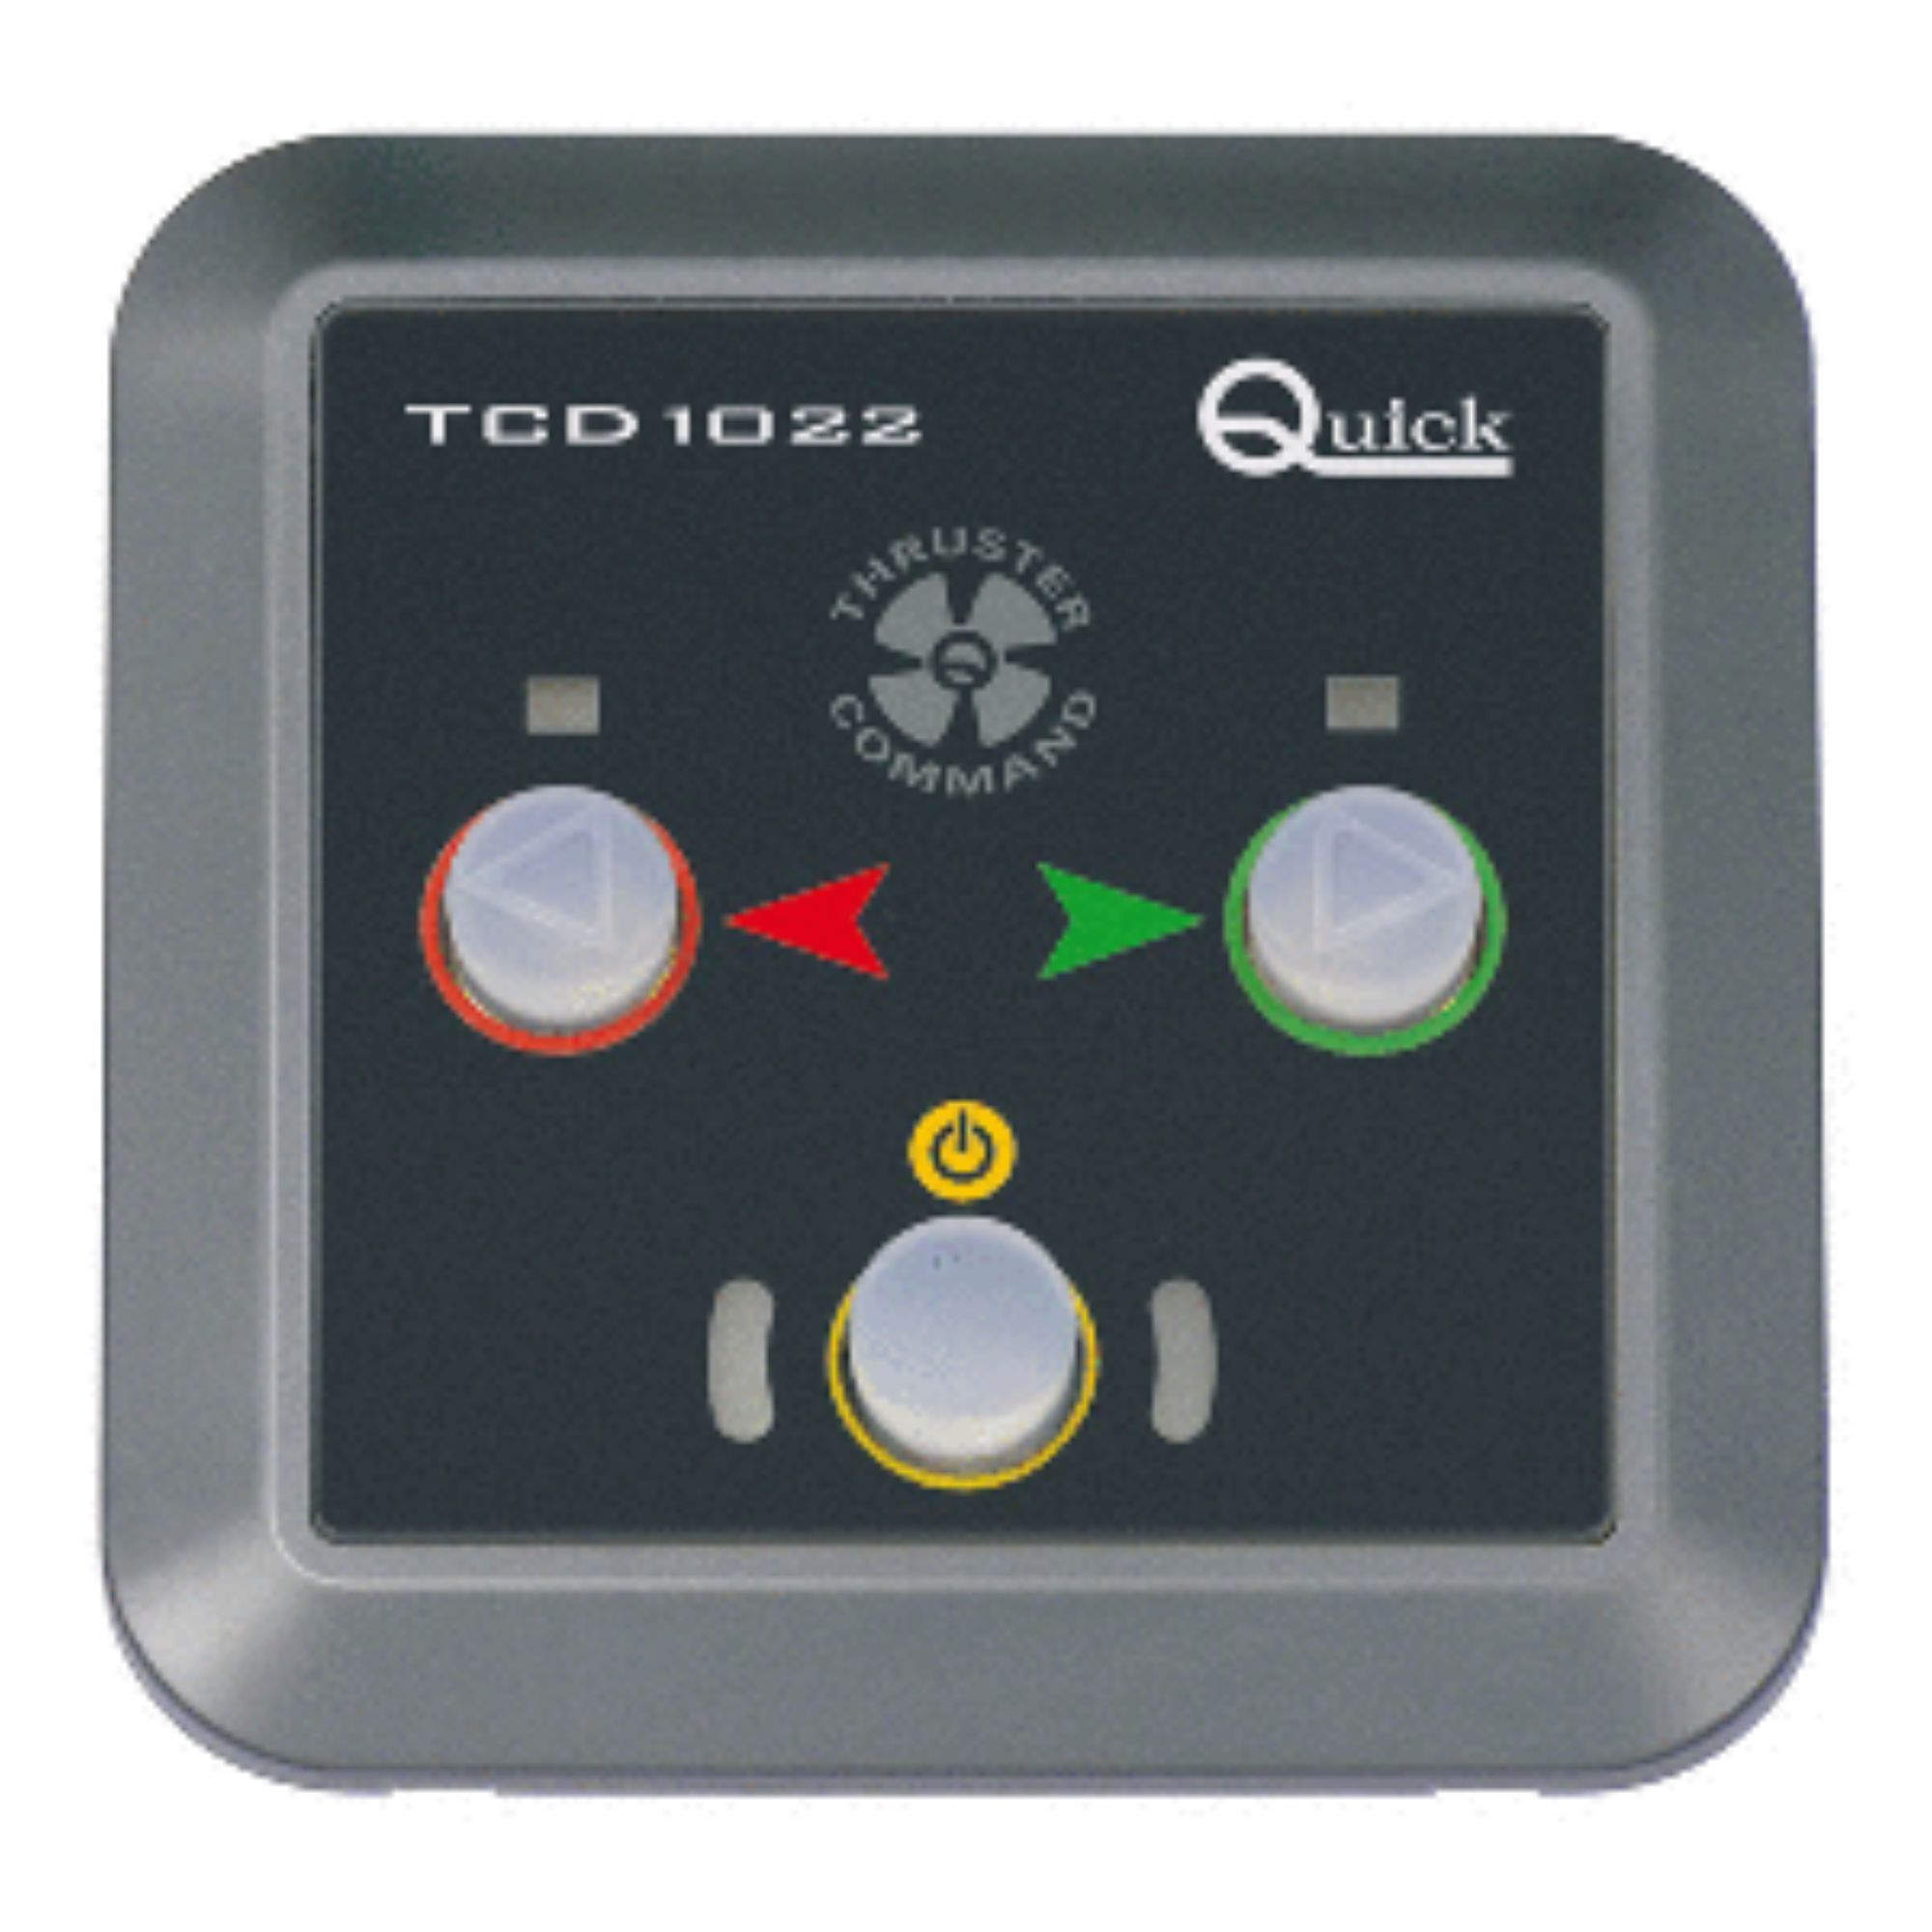 <p>You can now control the stern and bow thrusters with this push-button controller. With an ample power supply  it works conveniently at different temperatures. This important addition is a must-have.    <p><b>Product Features:</b>  <br>TCD1022 thruster push button controller  <br>Manufactured by Quick USA  <br>Perfect addition to your boating accessory  <br>Recommended for indoor use only    <p>Dimensions: 3